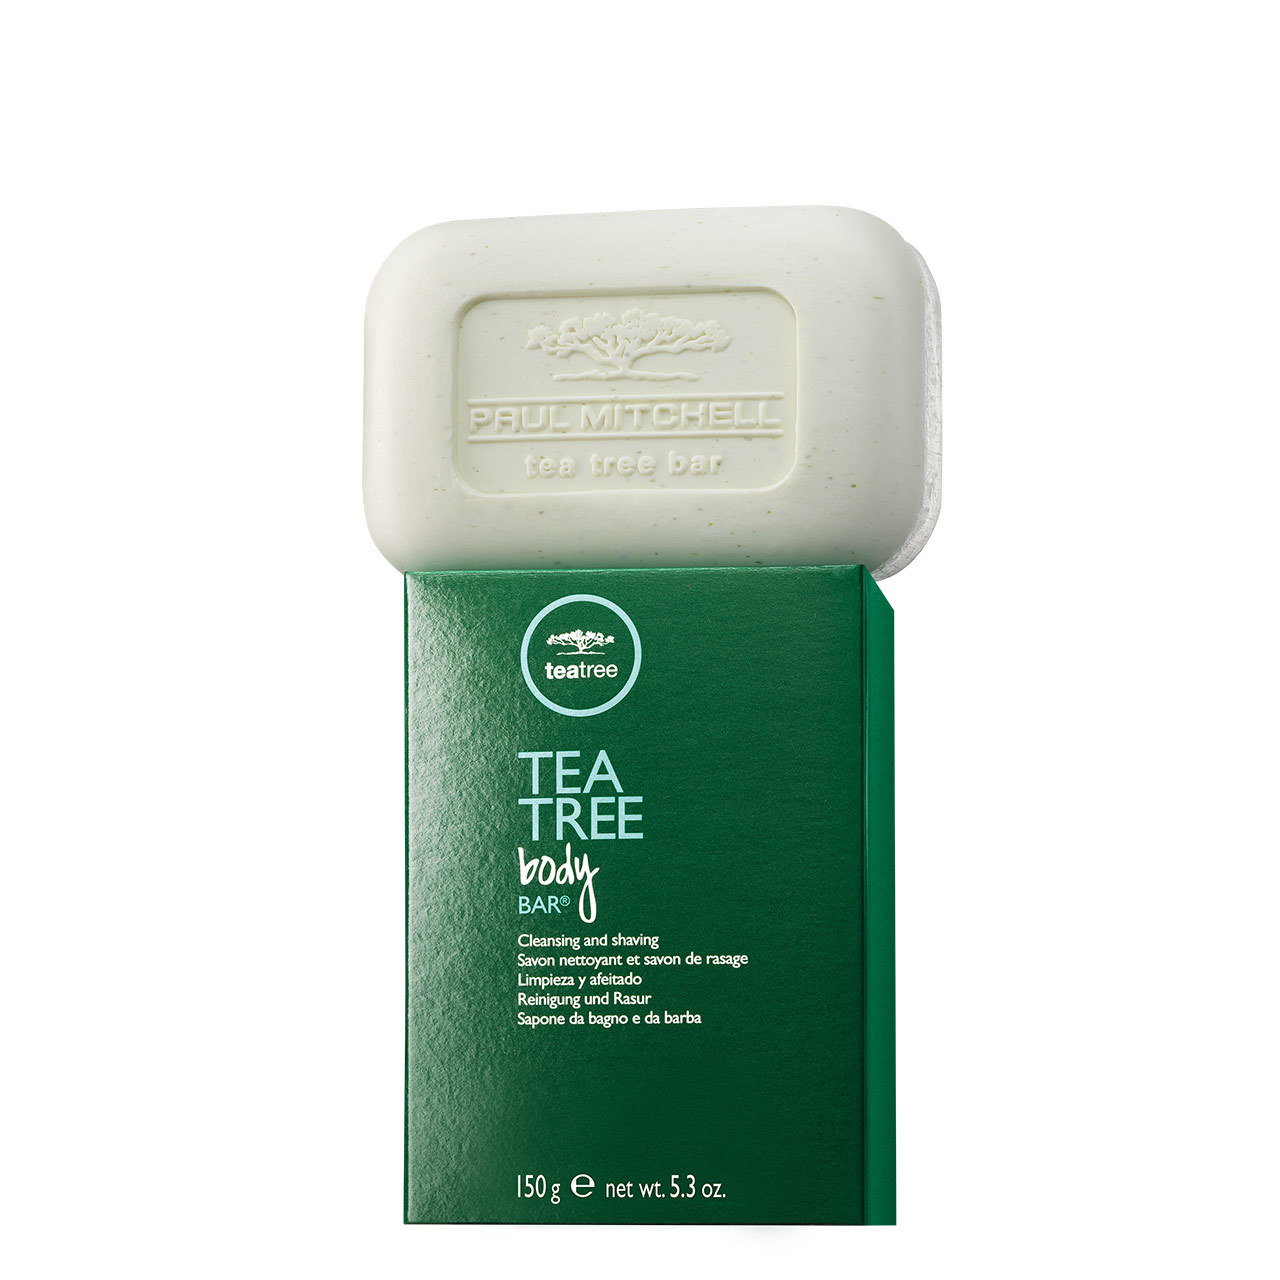 Tea Tree Body Bar by Paul Mitchell